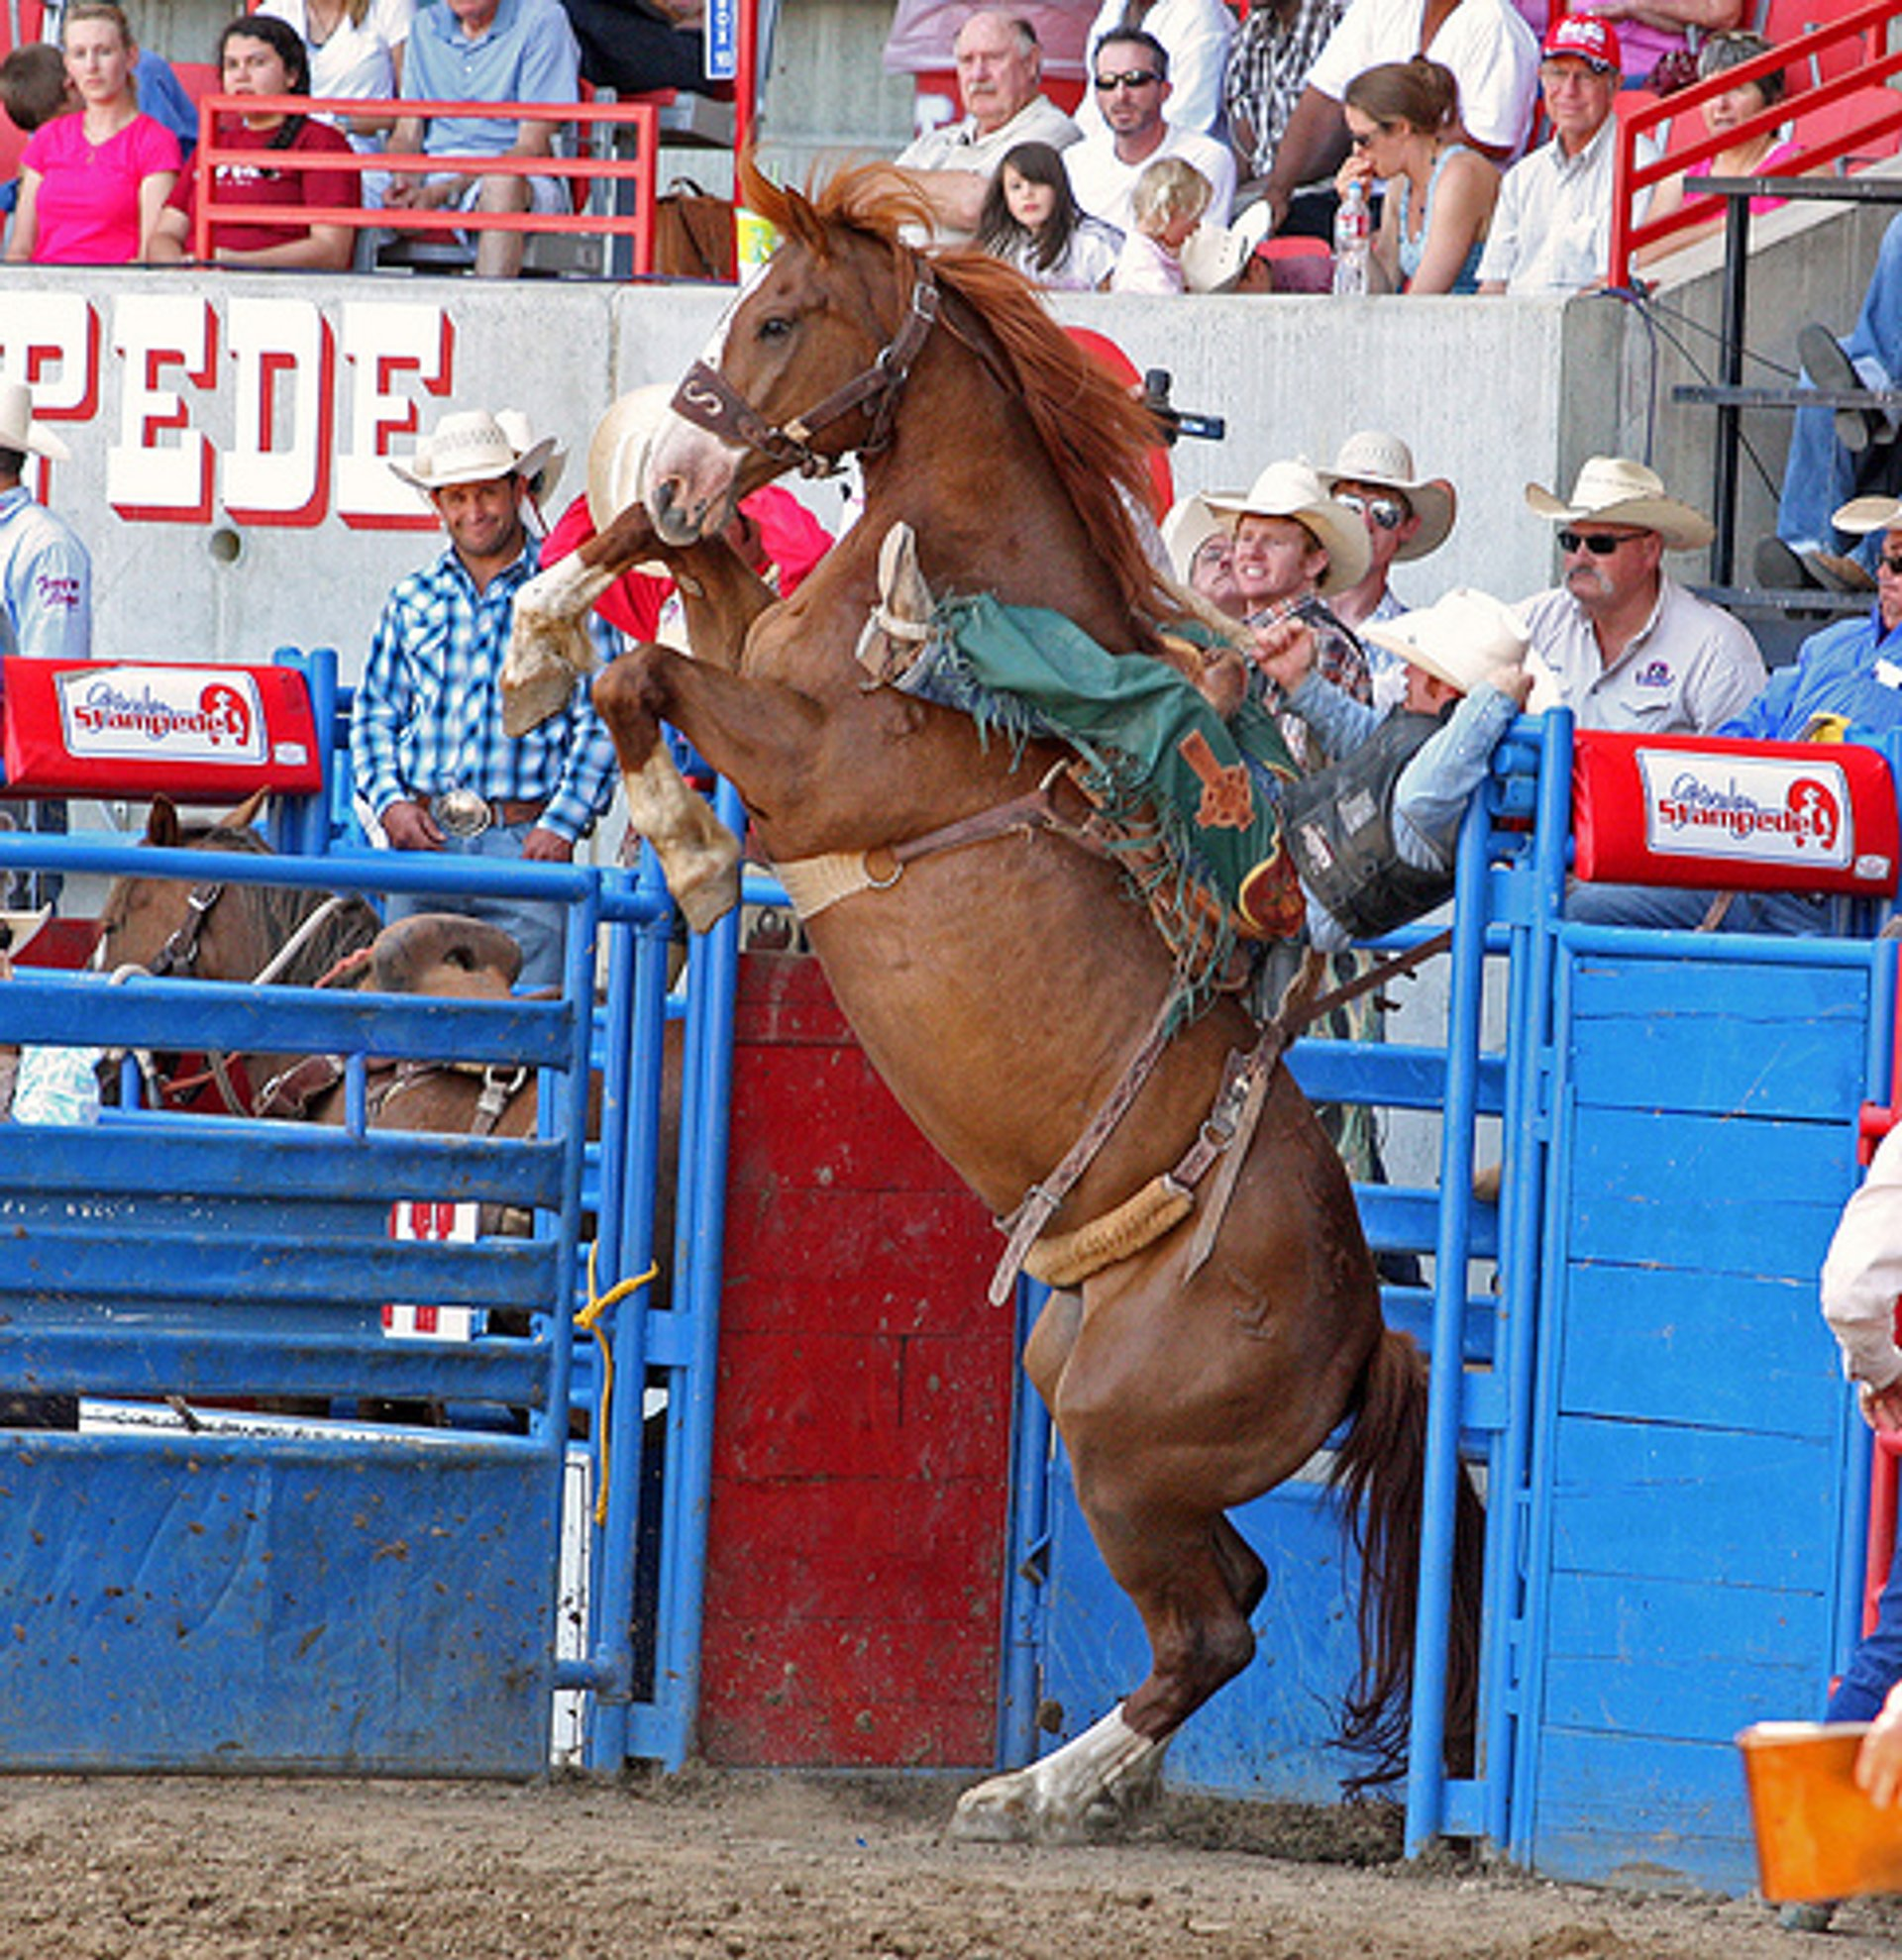 Best time for Greeley Stampede in Colorado 2020